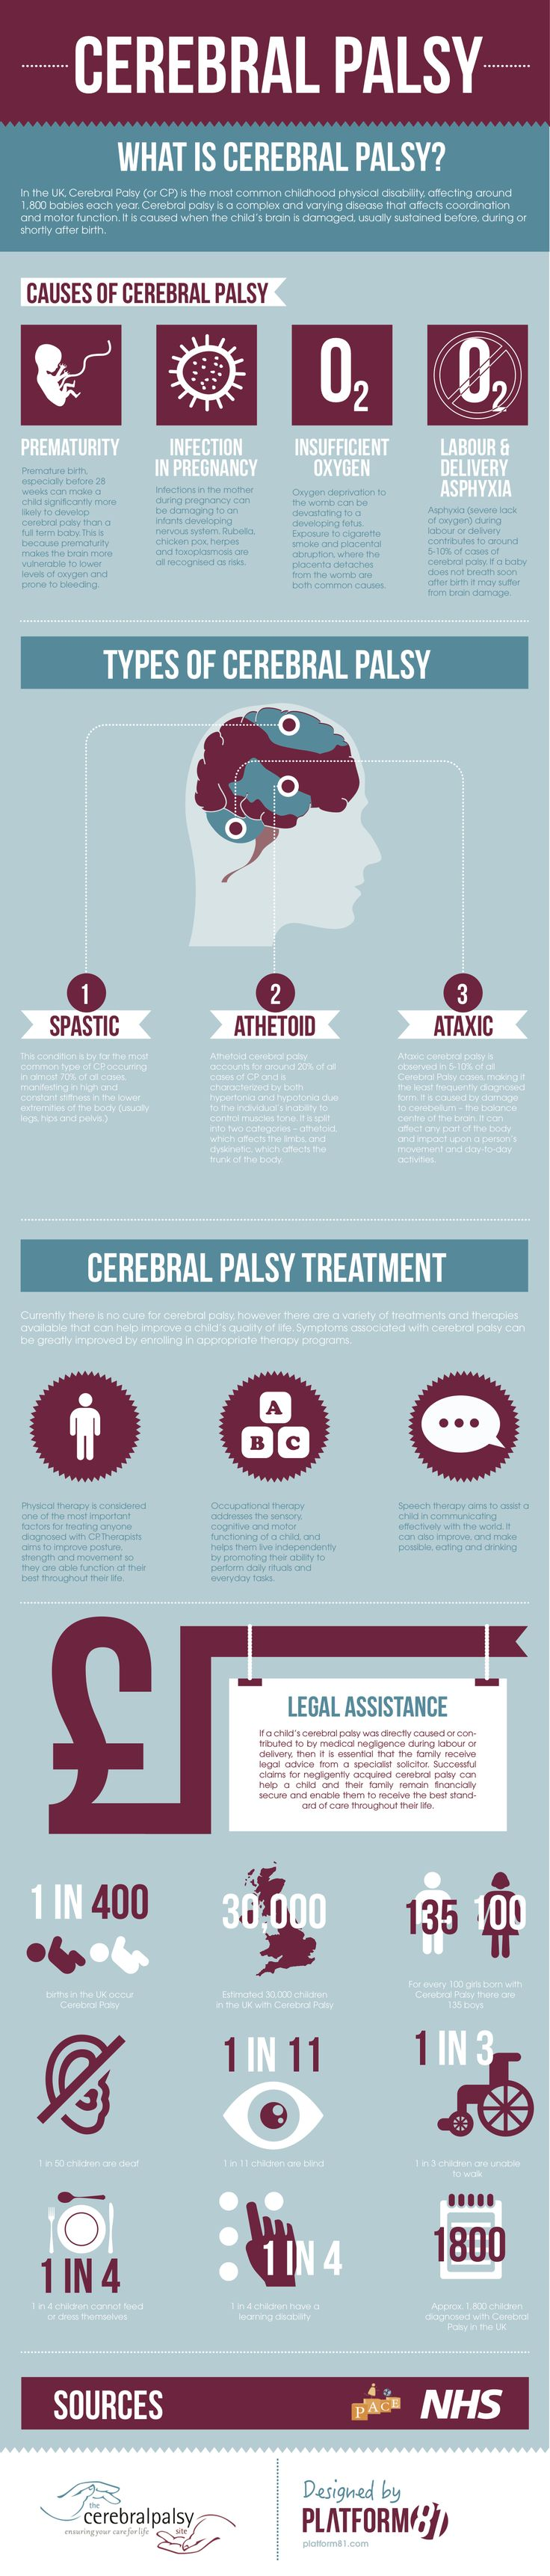 Here The Cerebral Palsy Site has put together a visual representation of facts about Cerebral Palsy and also UK statistics, from the types of Cerebral Palsy, the causes and ranges of treatment available.